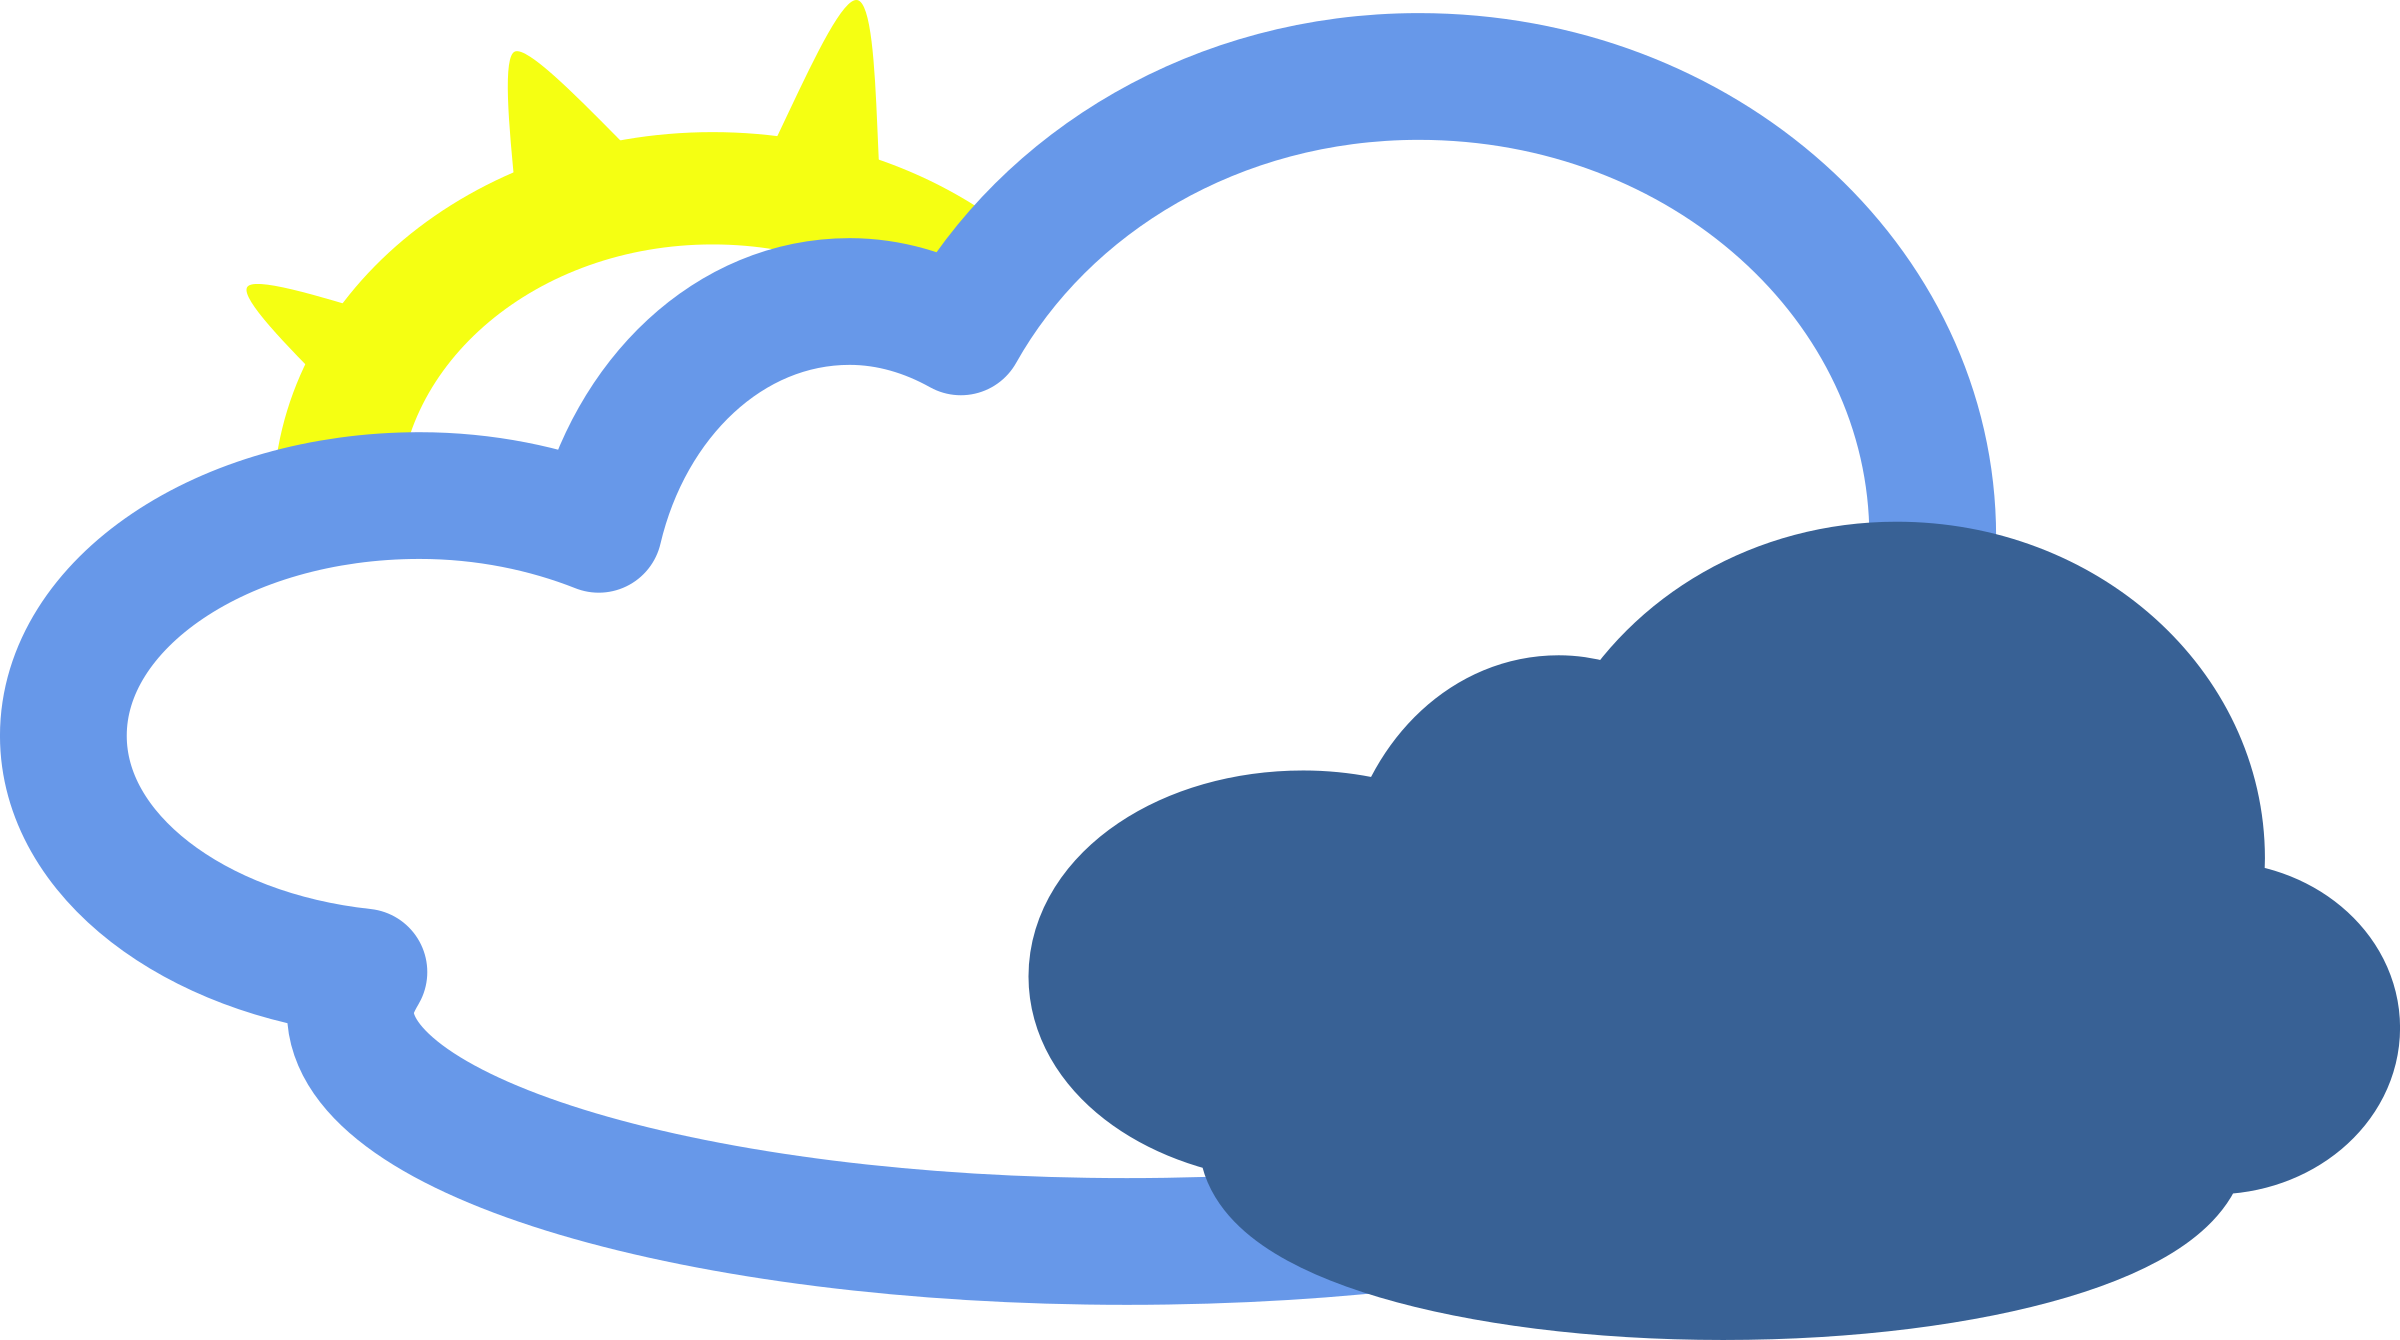 Windy Weather Clipart At Getdrawings Free For Personal Use